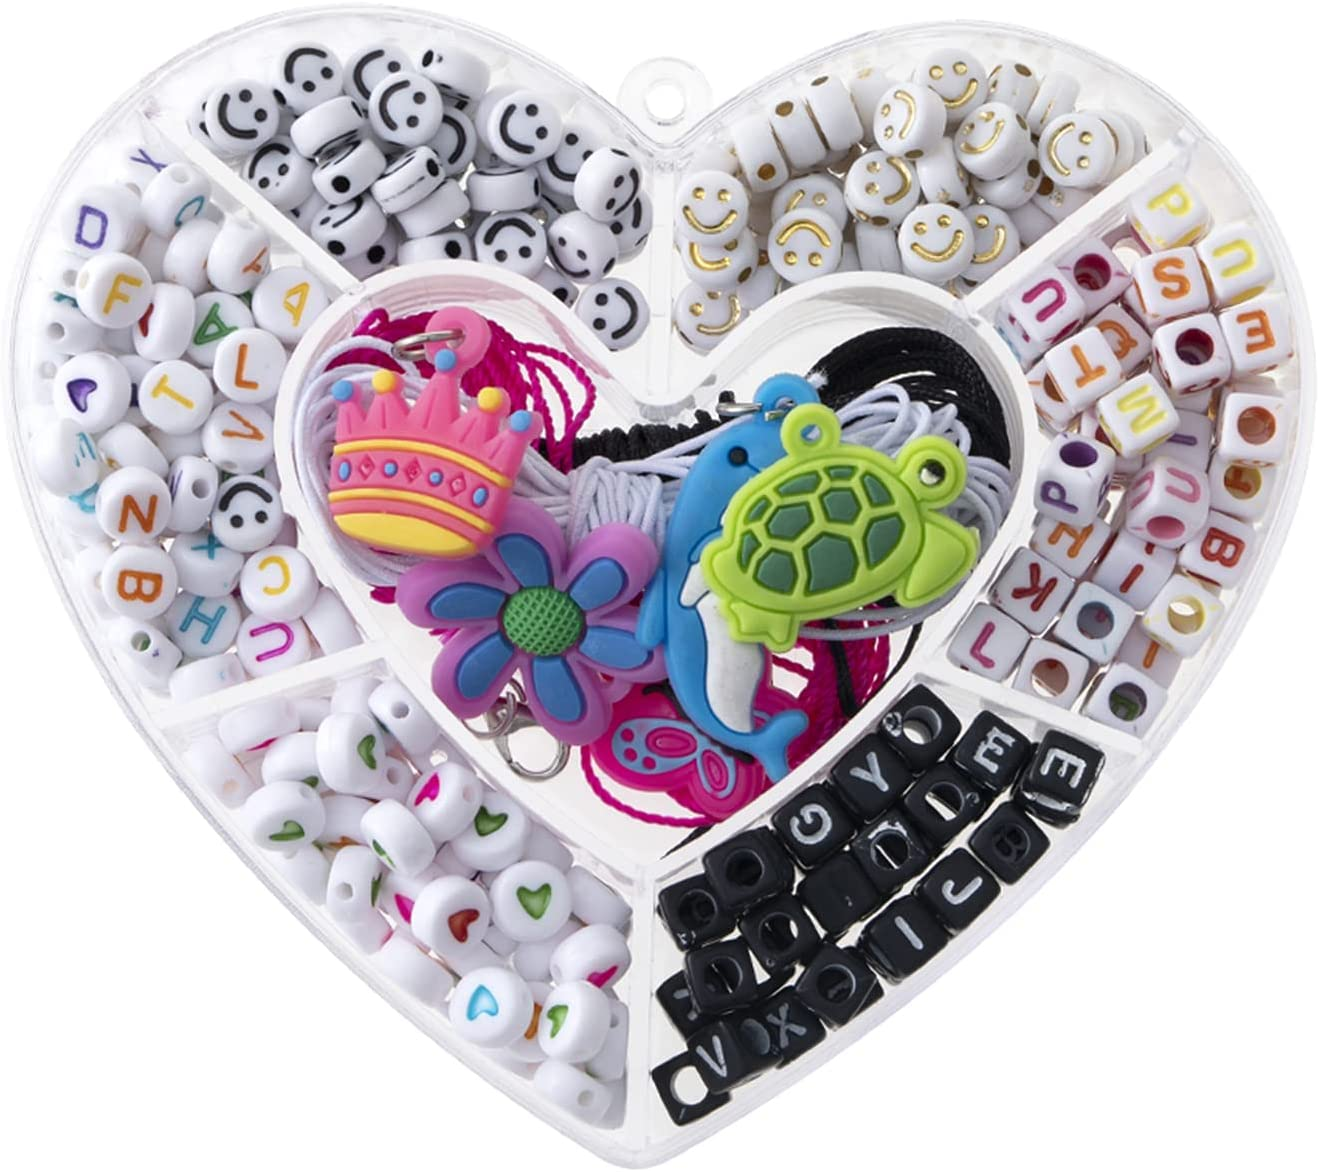 1000PCS Beads for Jewelry Making half Alphabet Seed L Glass Kit Limited price sale